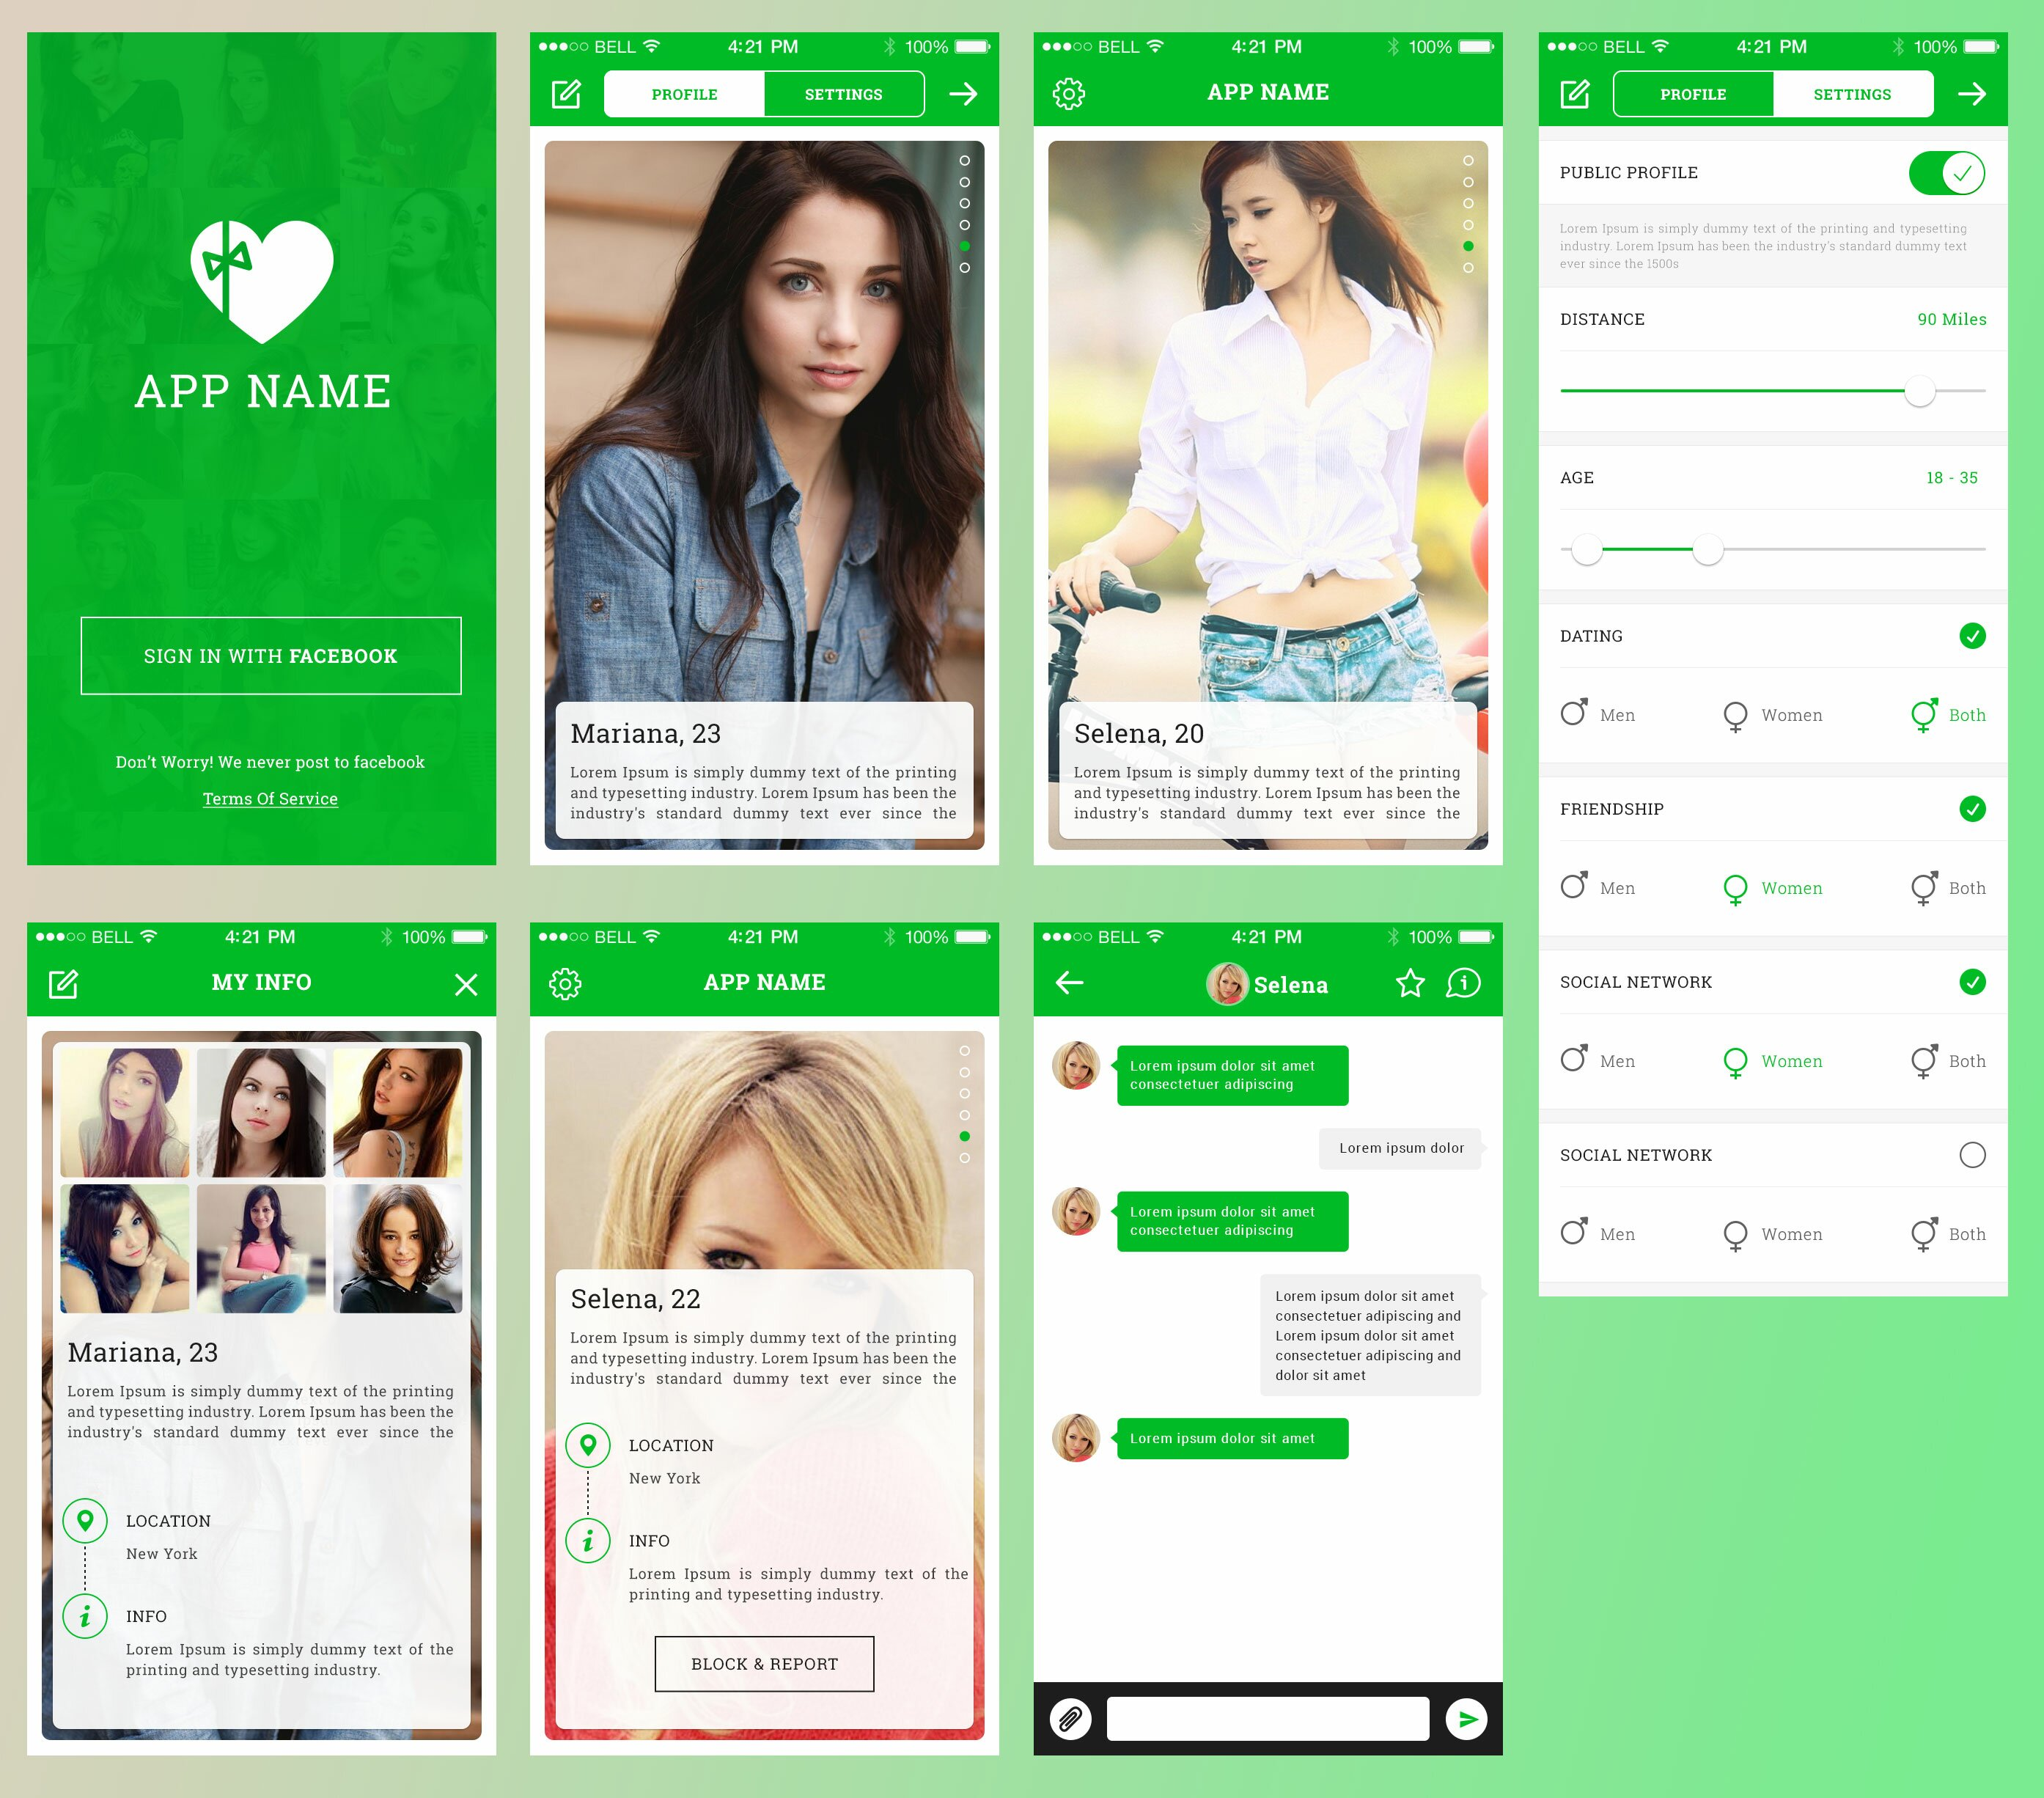 best dating app for relationships 2017 19+ the top best online dating sites | websites 2017 online dating sites is a introductory system whereby individuals can search and contact each other over the internet generally, the objective of this communication is to develop personal, romantic or great relationship.